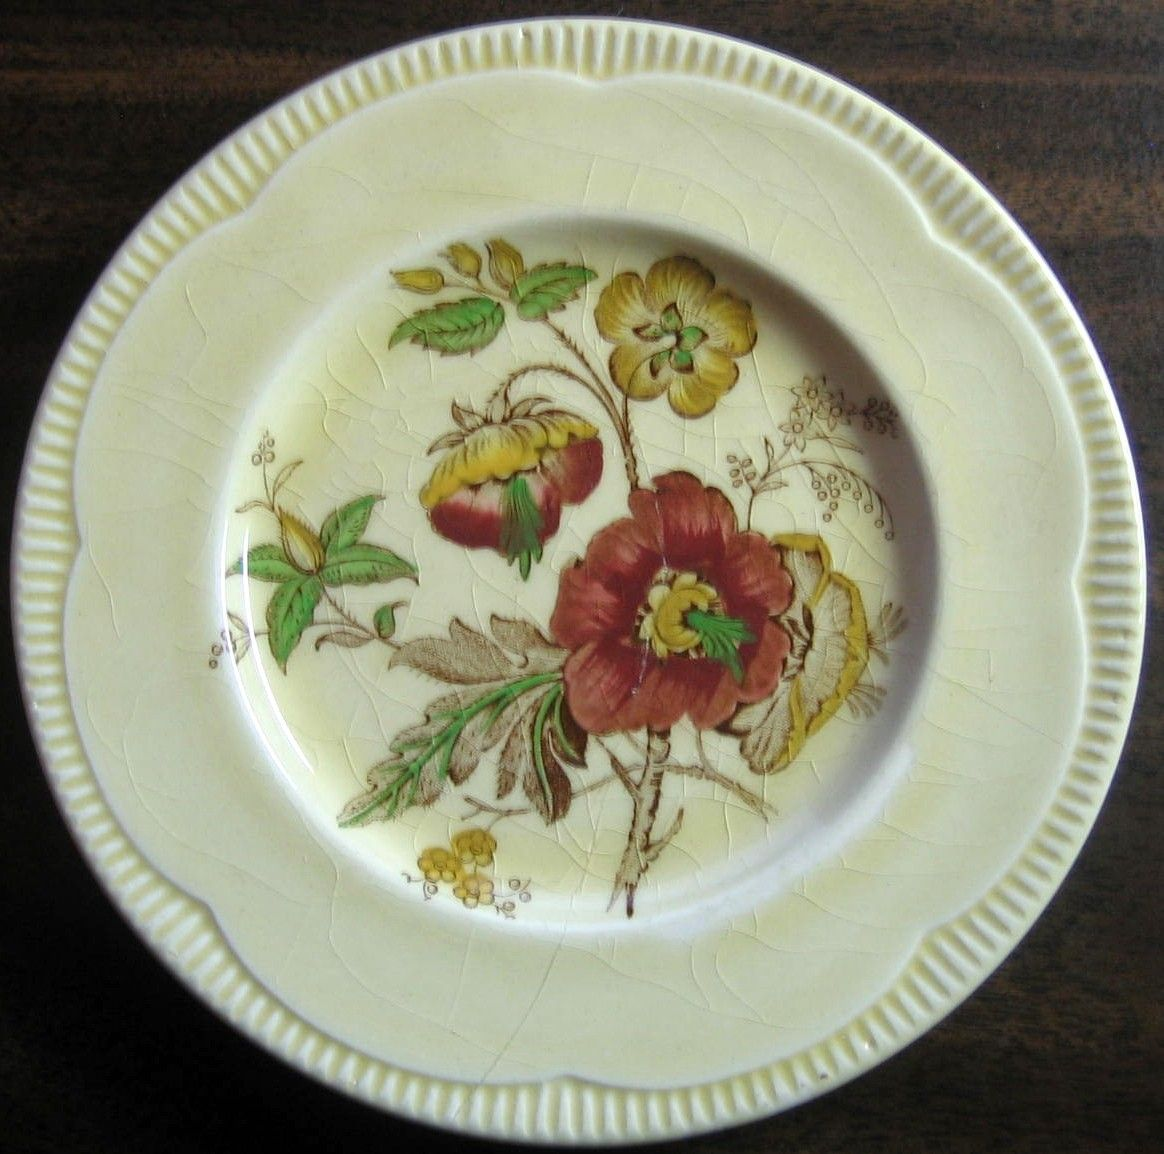 1940u0027s Exotic Poppy Burgandy Green Gold Scalloped Plate S & 1940u0027s Exotic Poppy Burgandy Green Gold Scalloped Plate S | Dinnerware